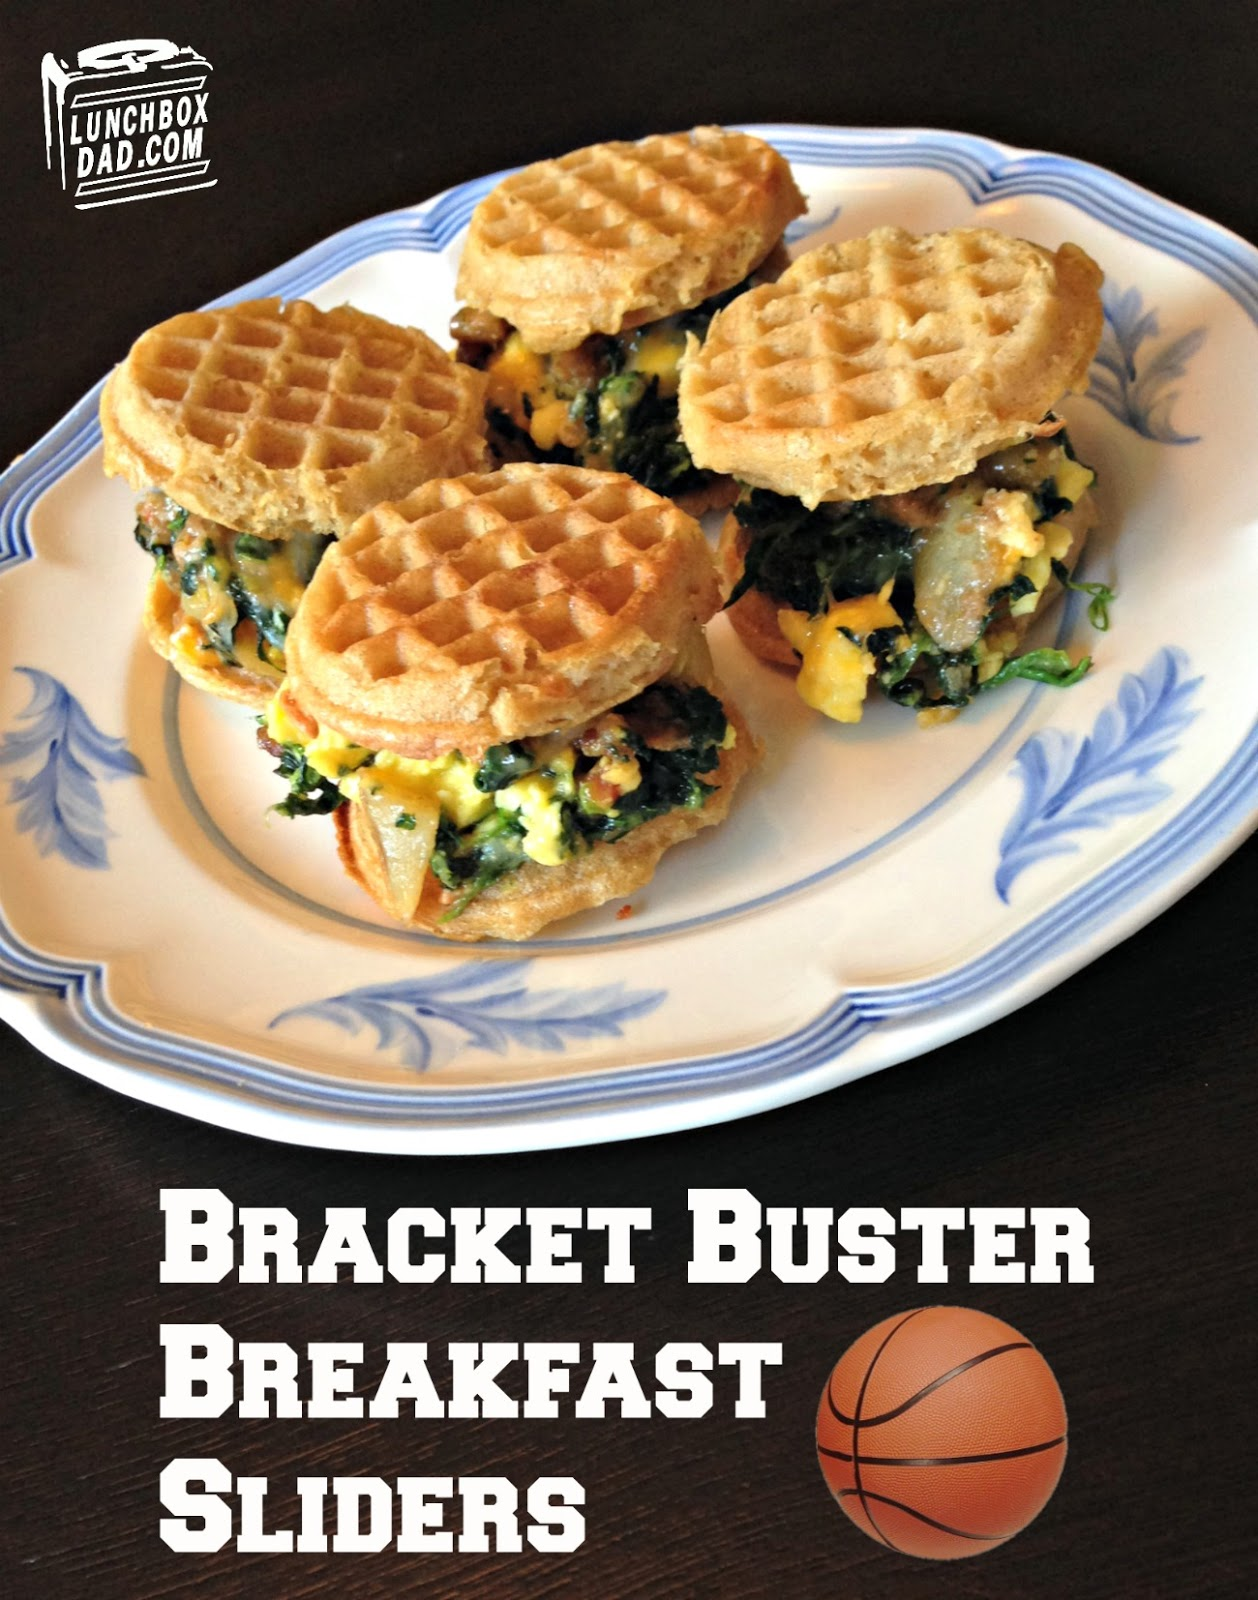 Bracket Buster Breakfast Sliders #FrozenChefMadness